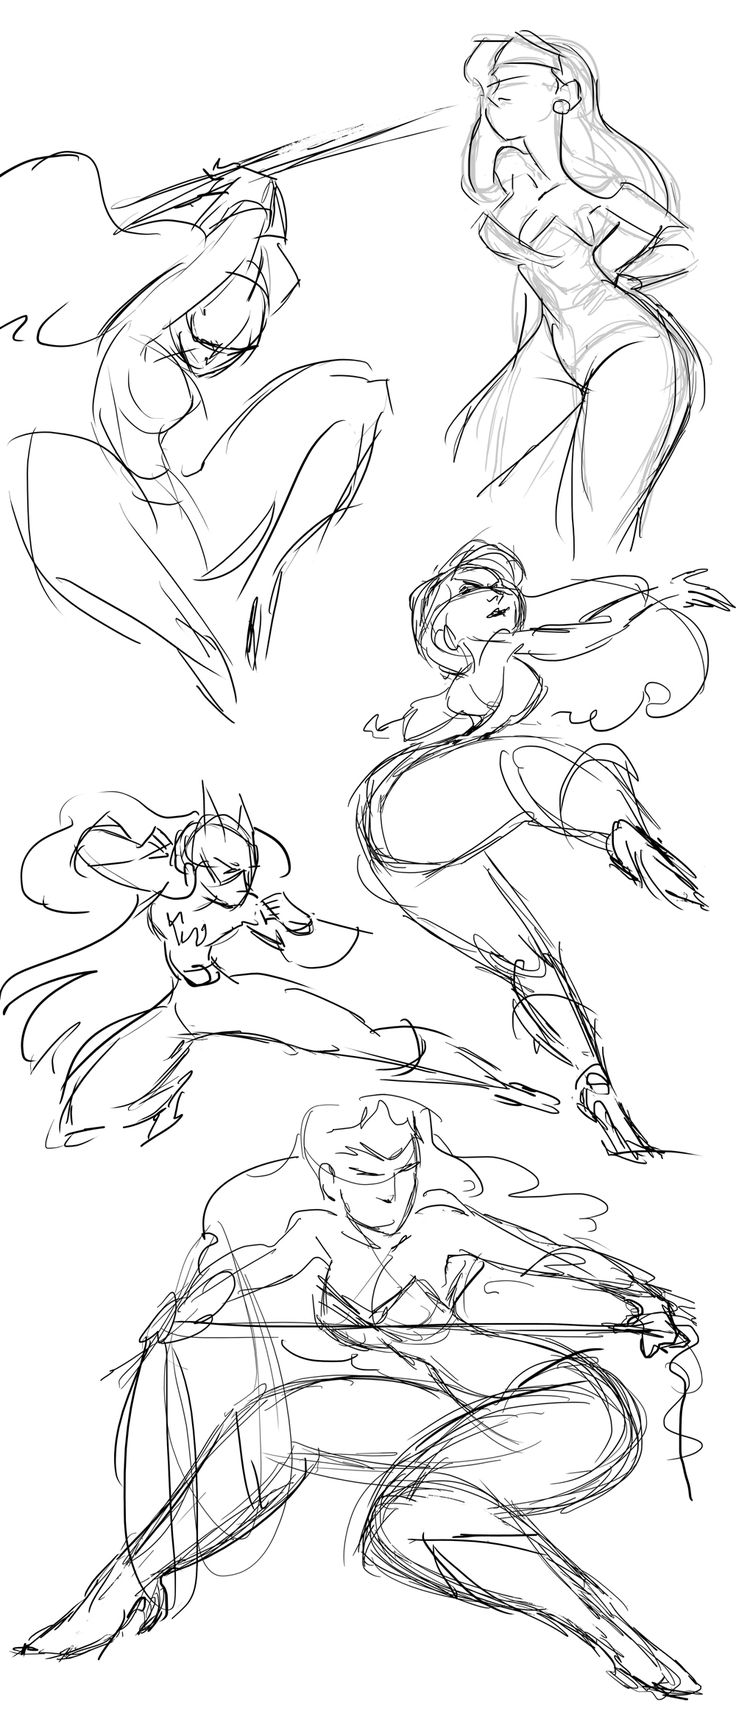 206 best Action Poses images on Pinterest | Character design ...